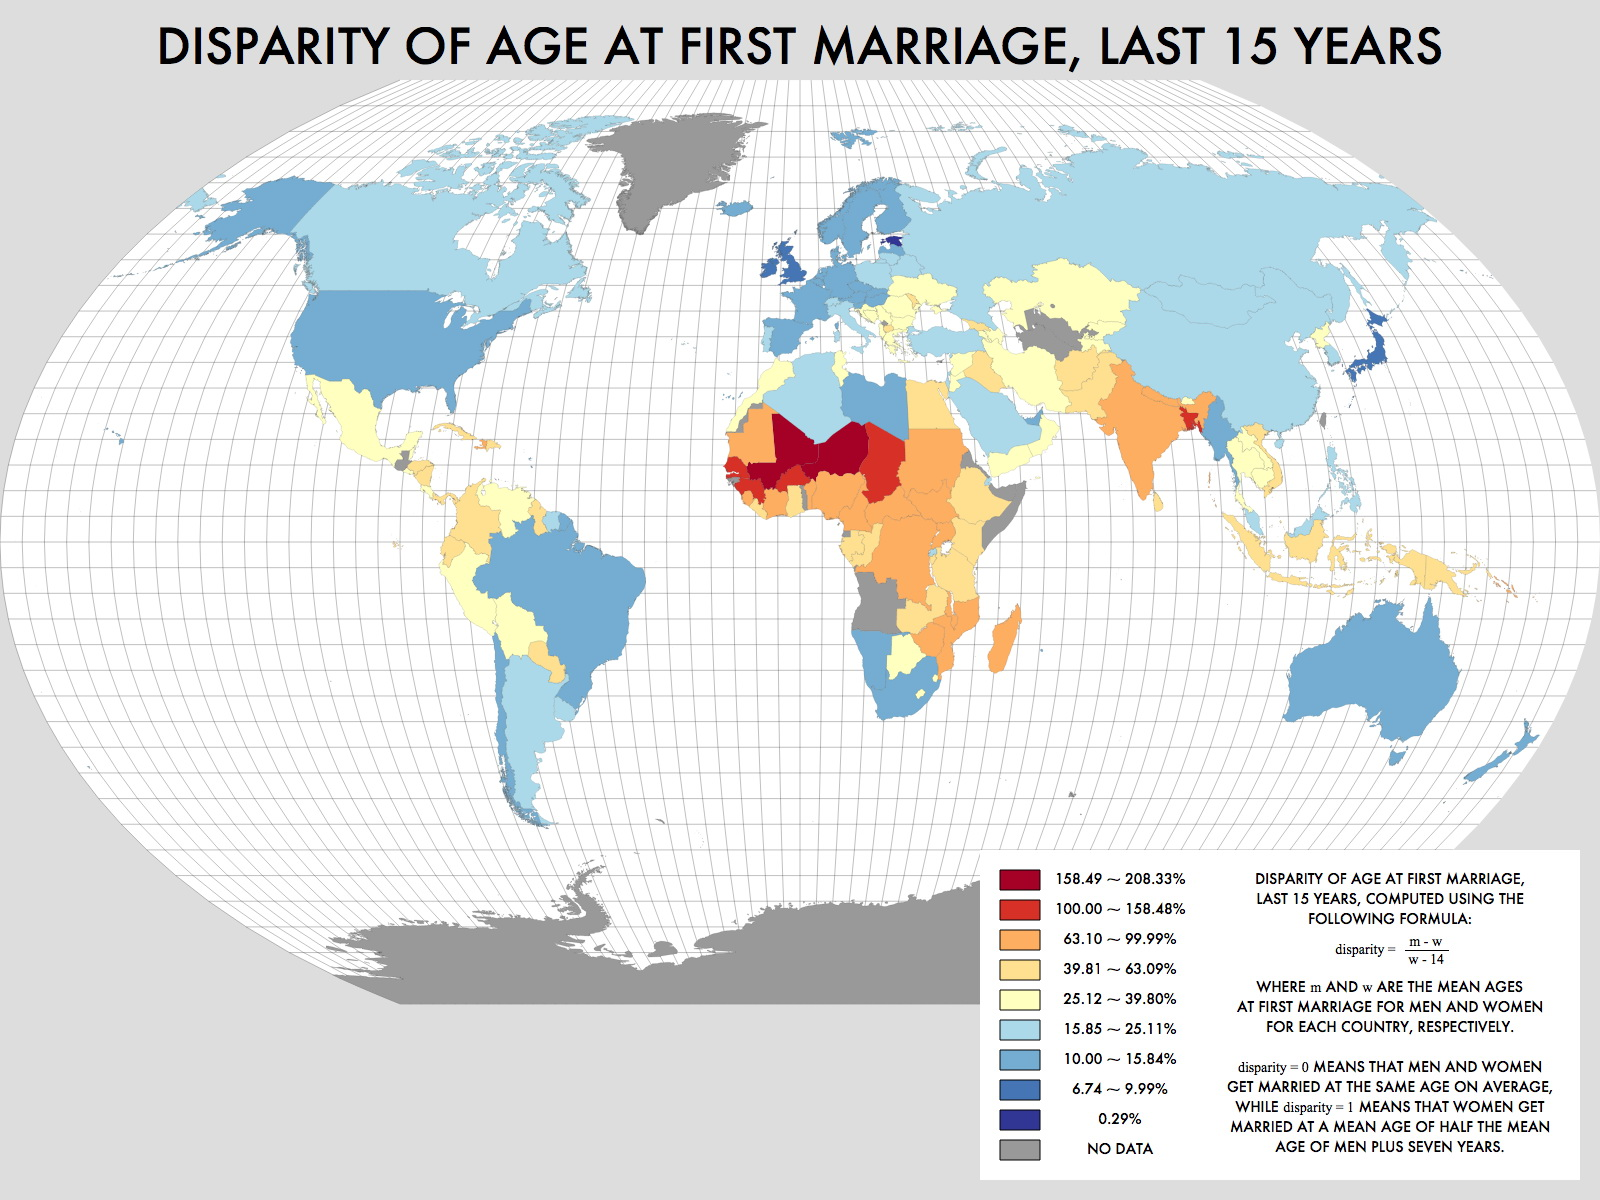 Disparity of age at first marriage between men and women